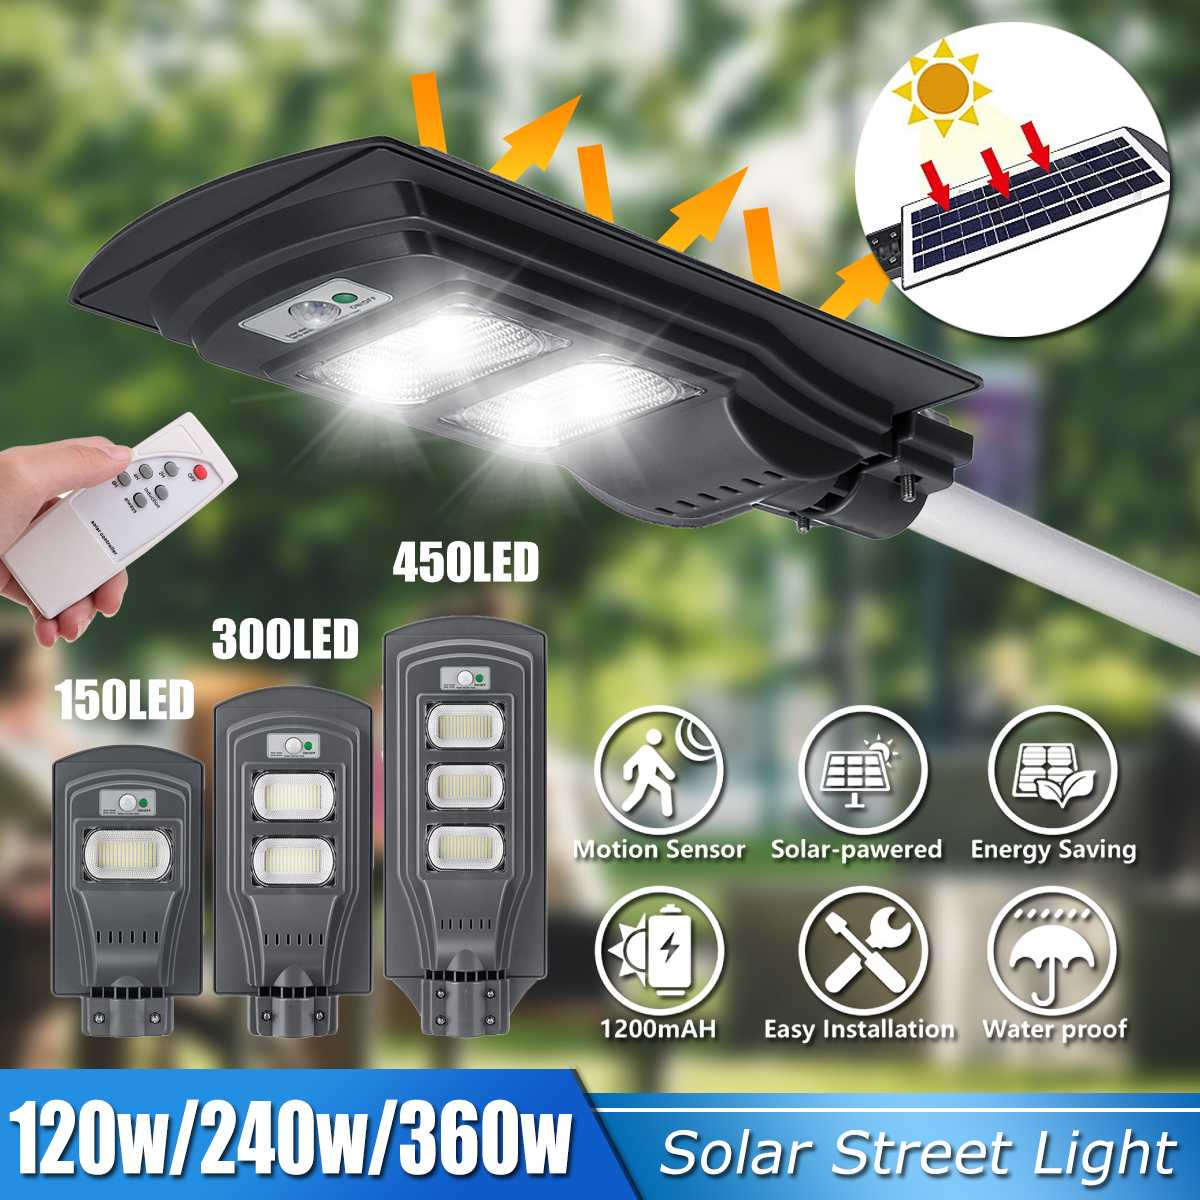 Smuxi 30000LM 120W/240W/360W Solar Street Light 150/300/500 Grey Outdoor High-brightness Lamp Motion Sensor Remote Control IP65